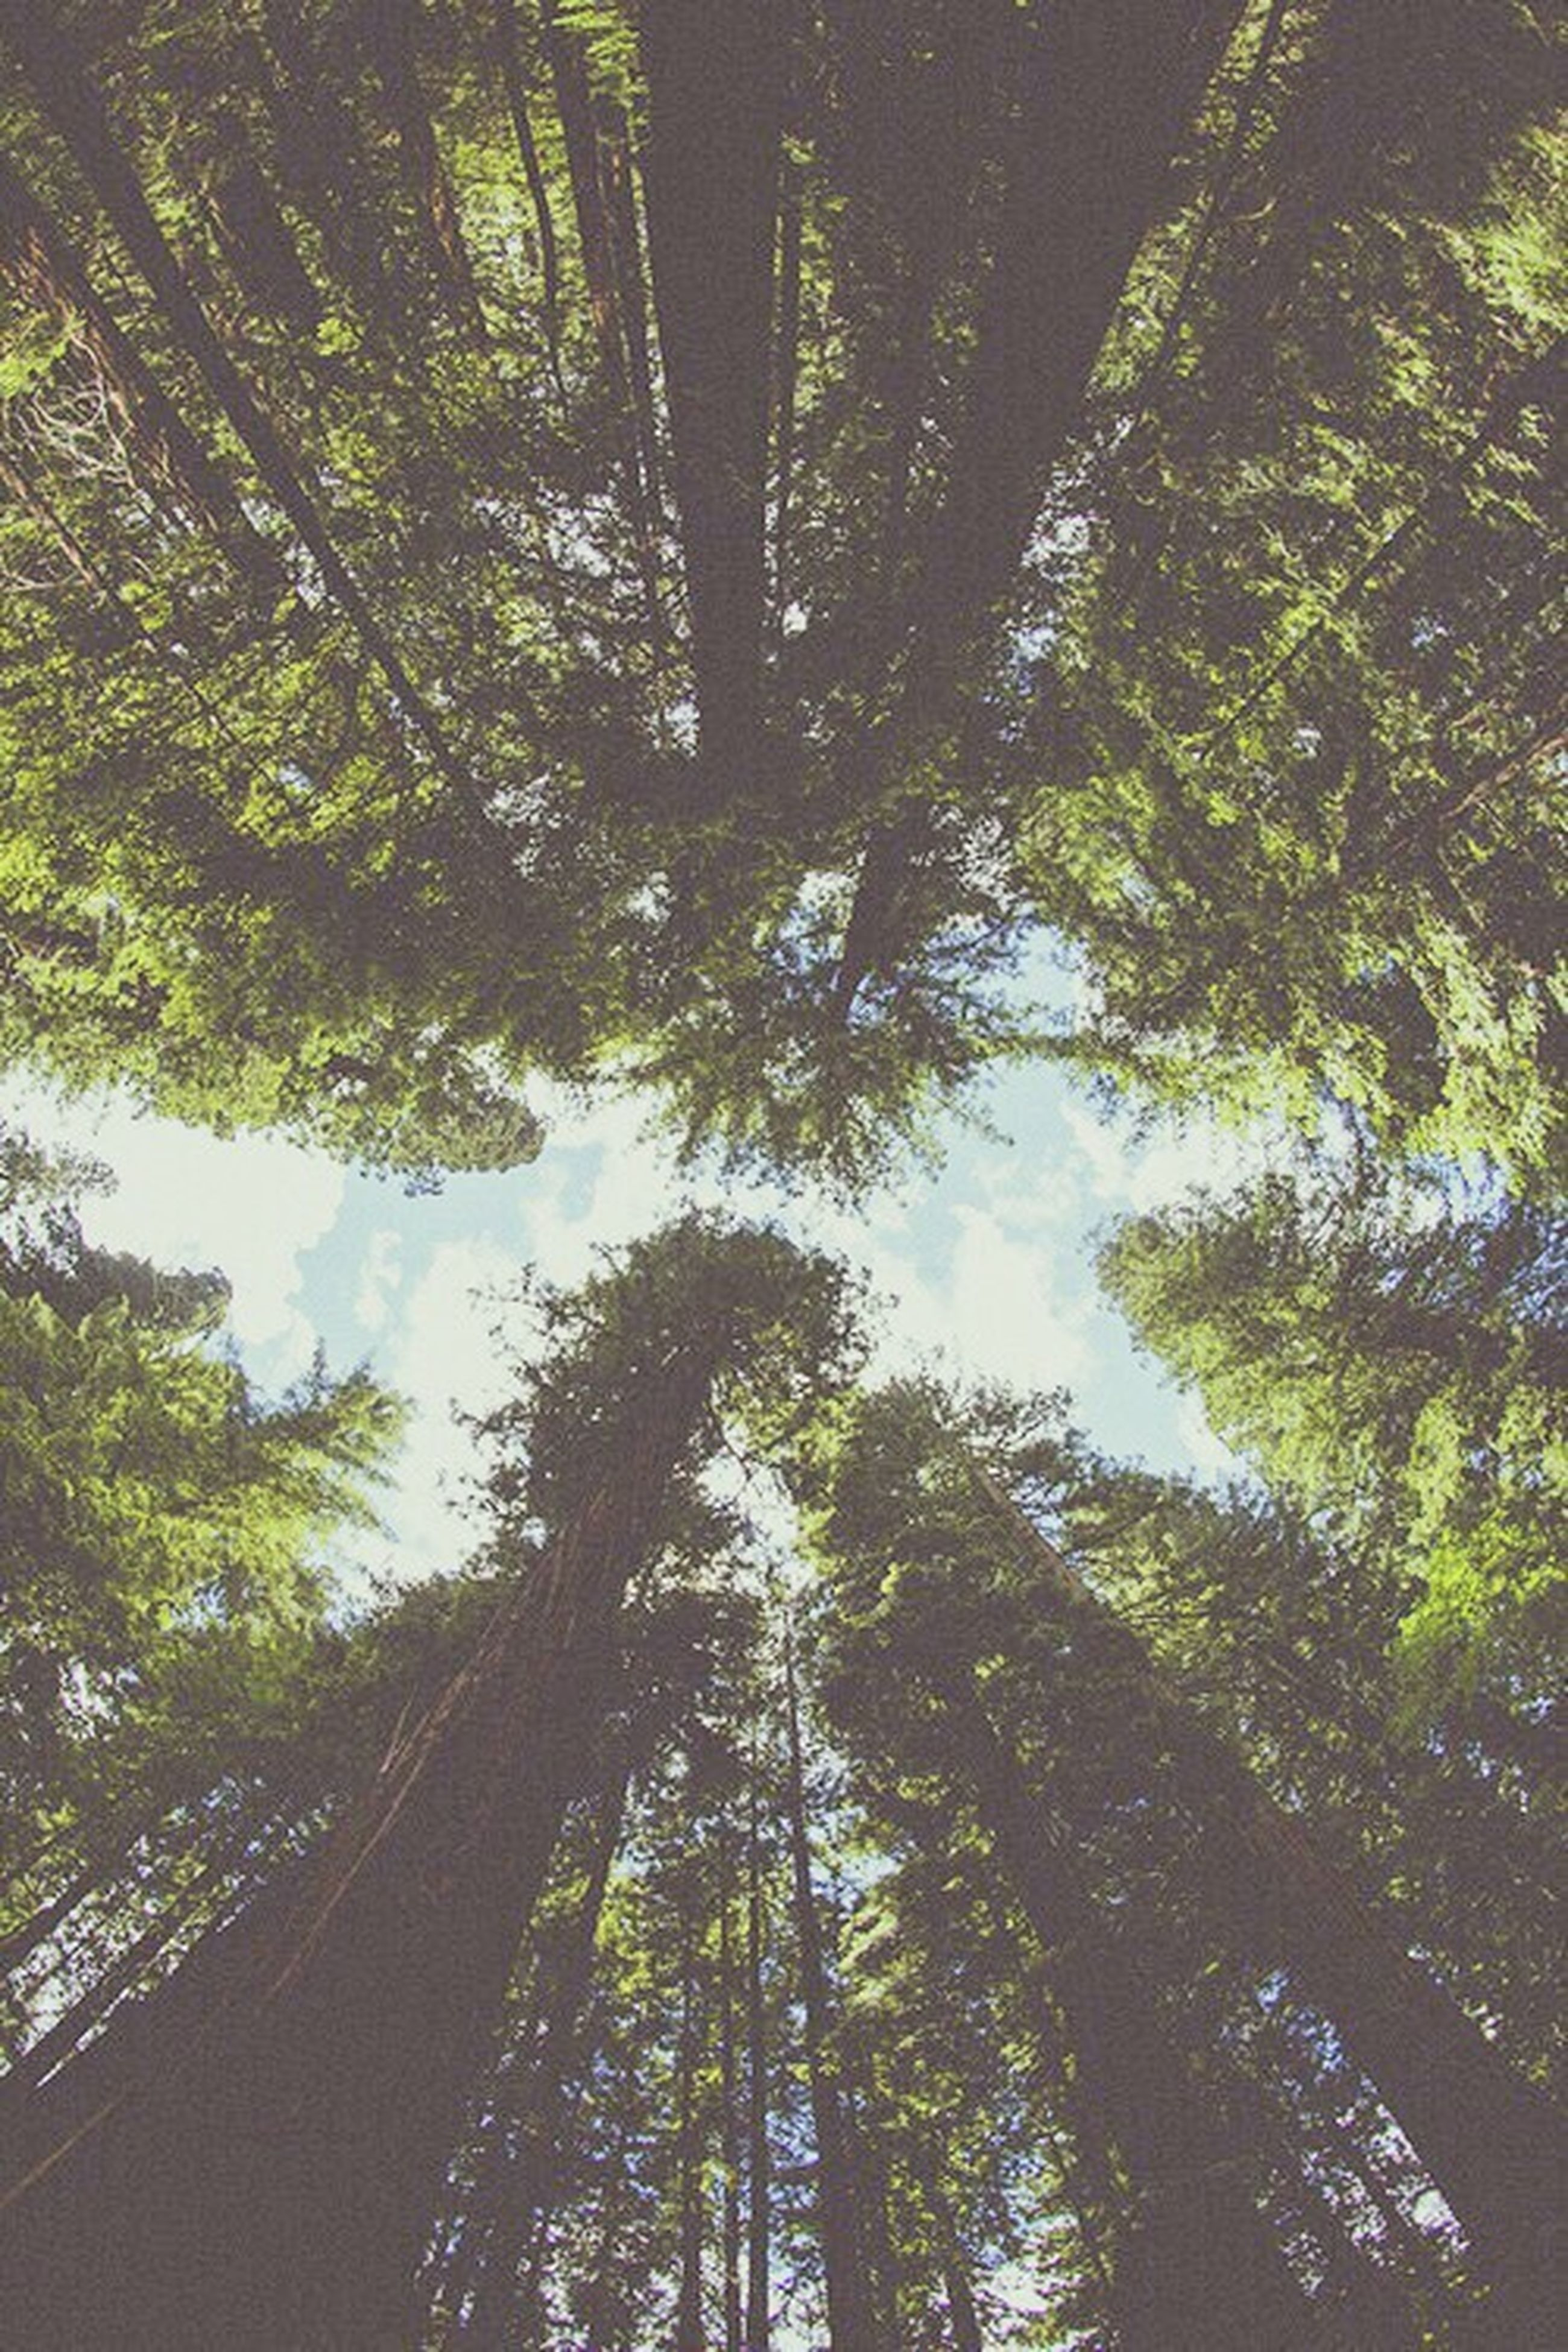 tree, low angle view, growth, tree trunk, tranquility, forest, nature, branch, beauty in nature, green color, woodland, tranquil scene, scenics, day, tall - high, outdoors, sunlight, no people, sky, lush foliage